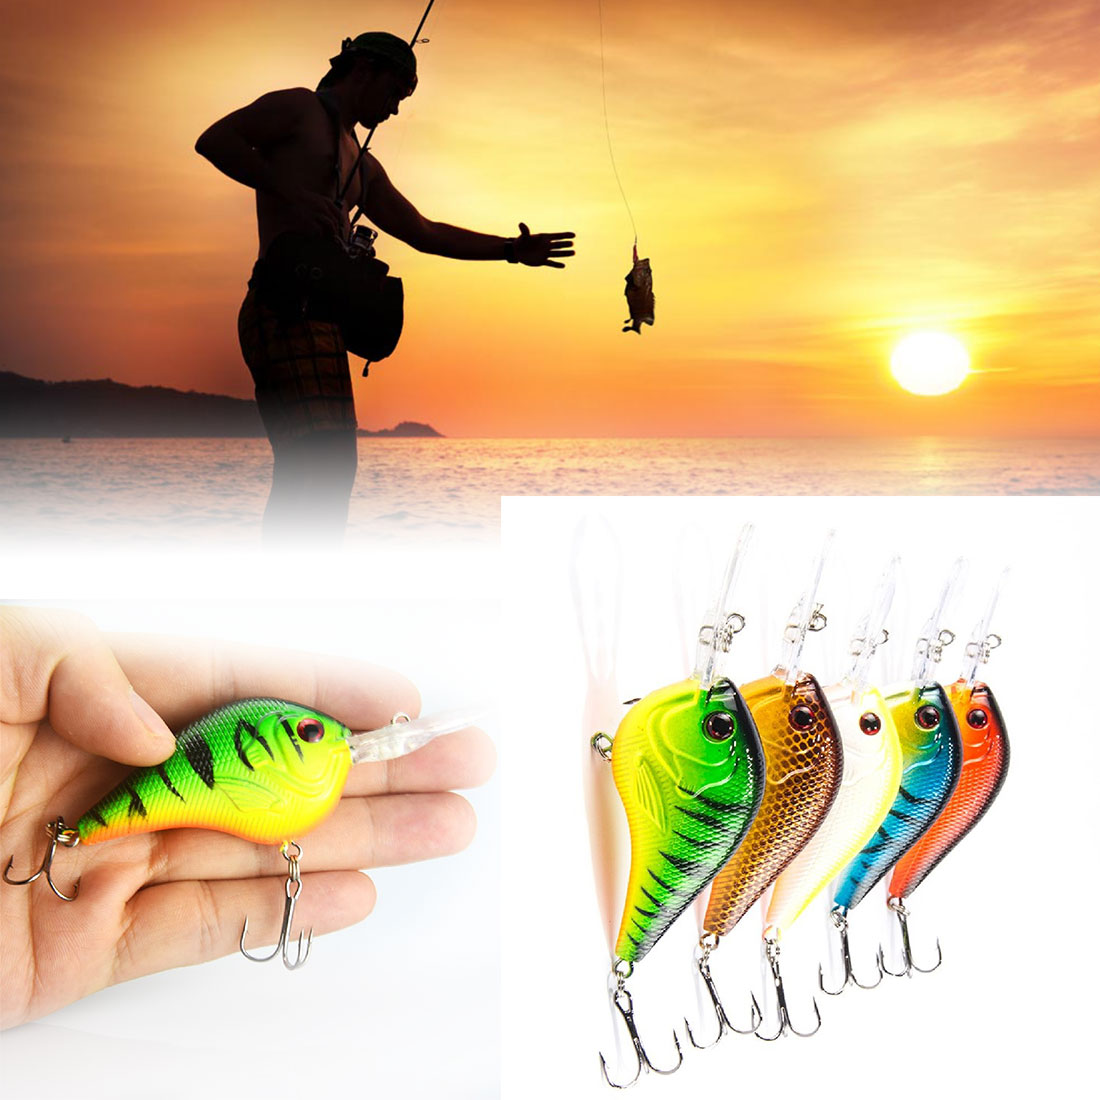 Good 5Pcs Fishing Lure Deep Swimming Crankbait 9.5cm11g Hard Bait 5 Colors Available Tight Wobble Slow Floating pesca Tackle